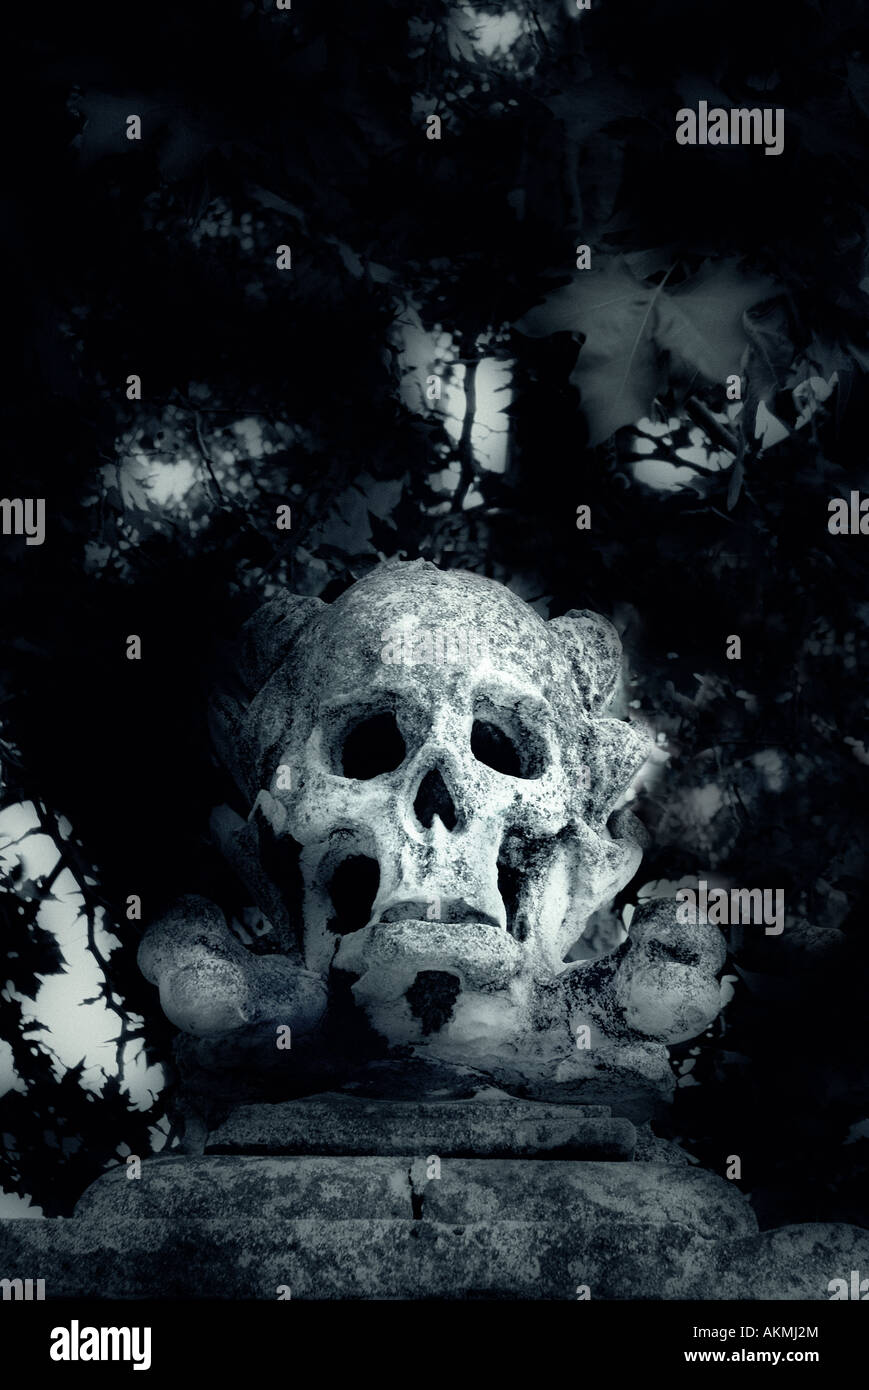 A Sculpture of a Skull on a Post. St Nicholas' Church, Deptford. London. England. - Stock Image